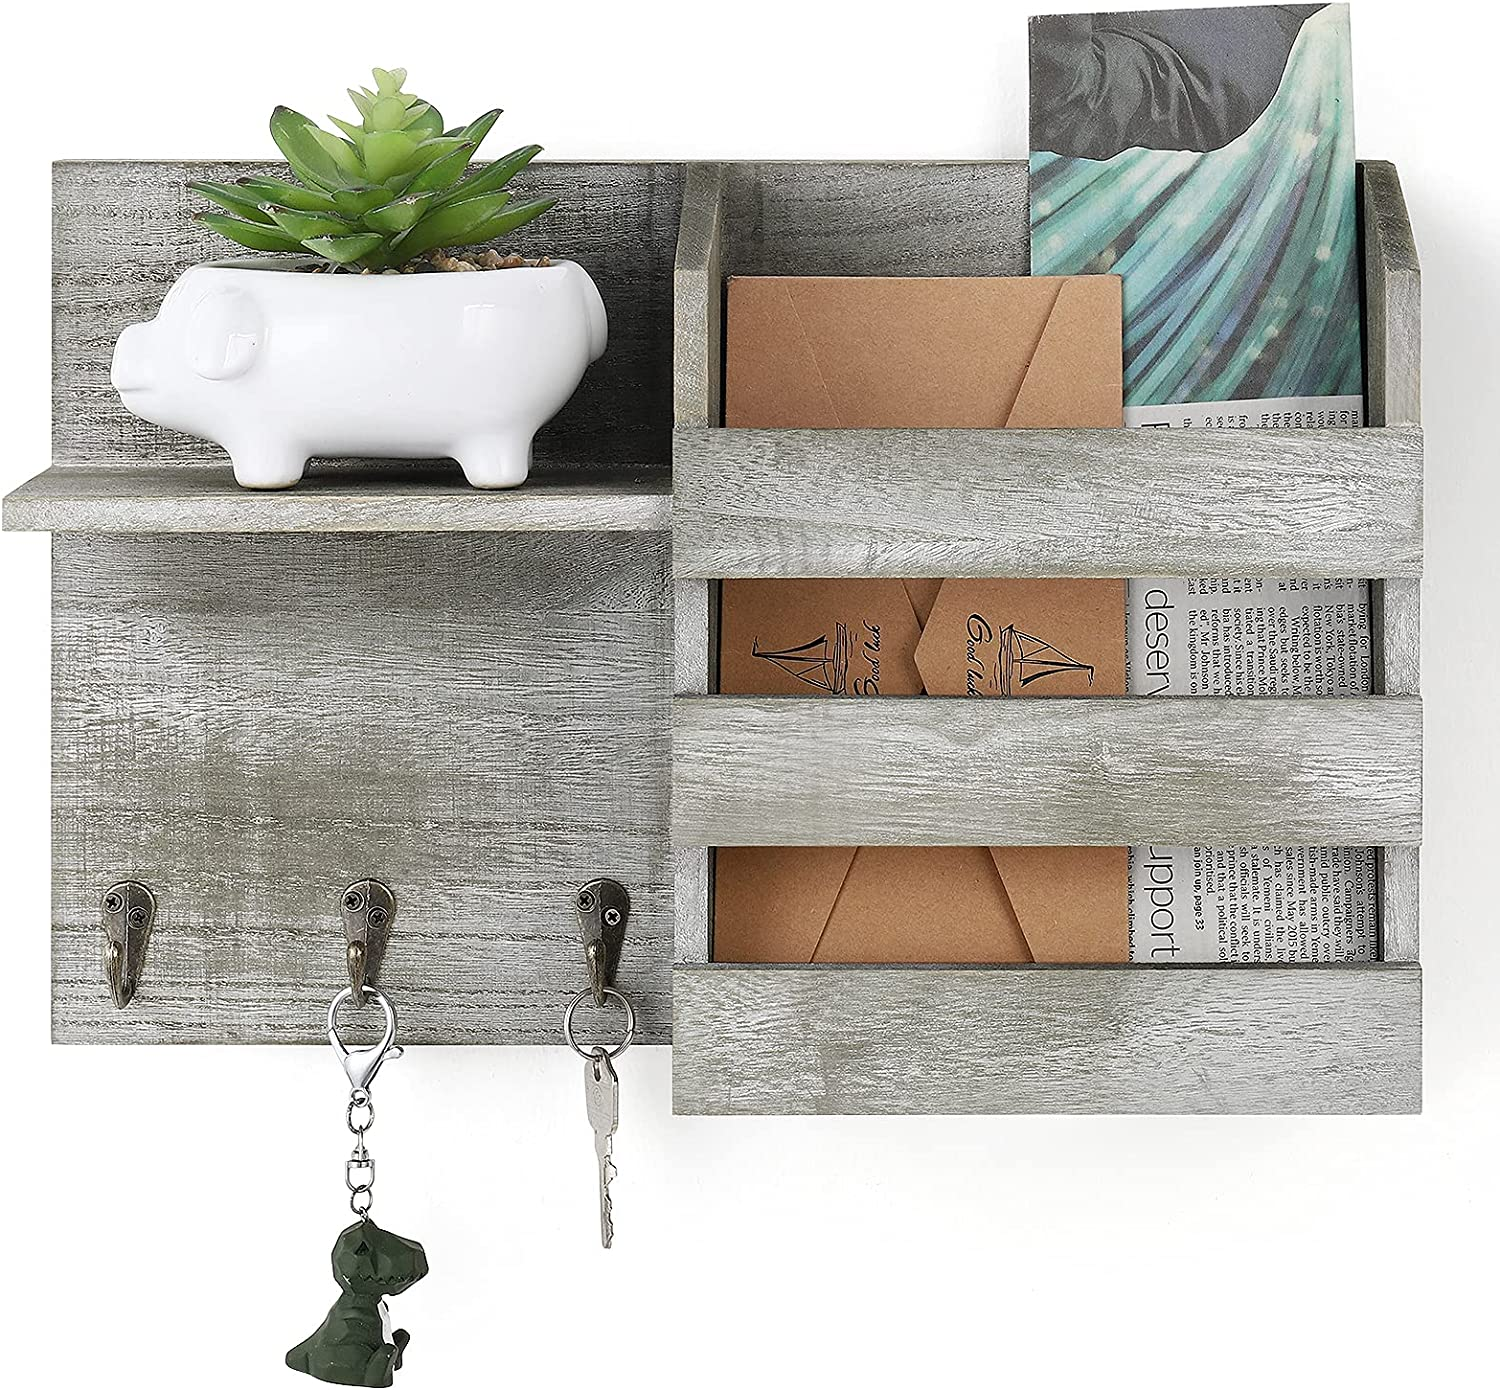 Rustic Mail Holder with Key Hook Rack, Wall Mount Mail Envelope Storage Organizer Wooden Mail Sorter for Magazine Newspaper Bills, Wall Decor for Entryway, Mudroom, Hallway, Office,Olive Green